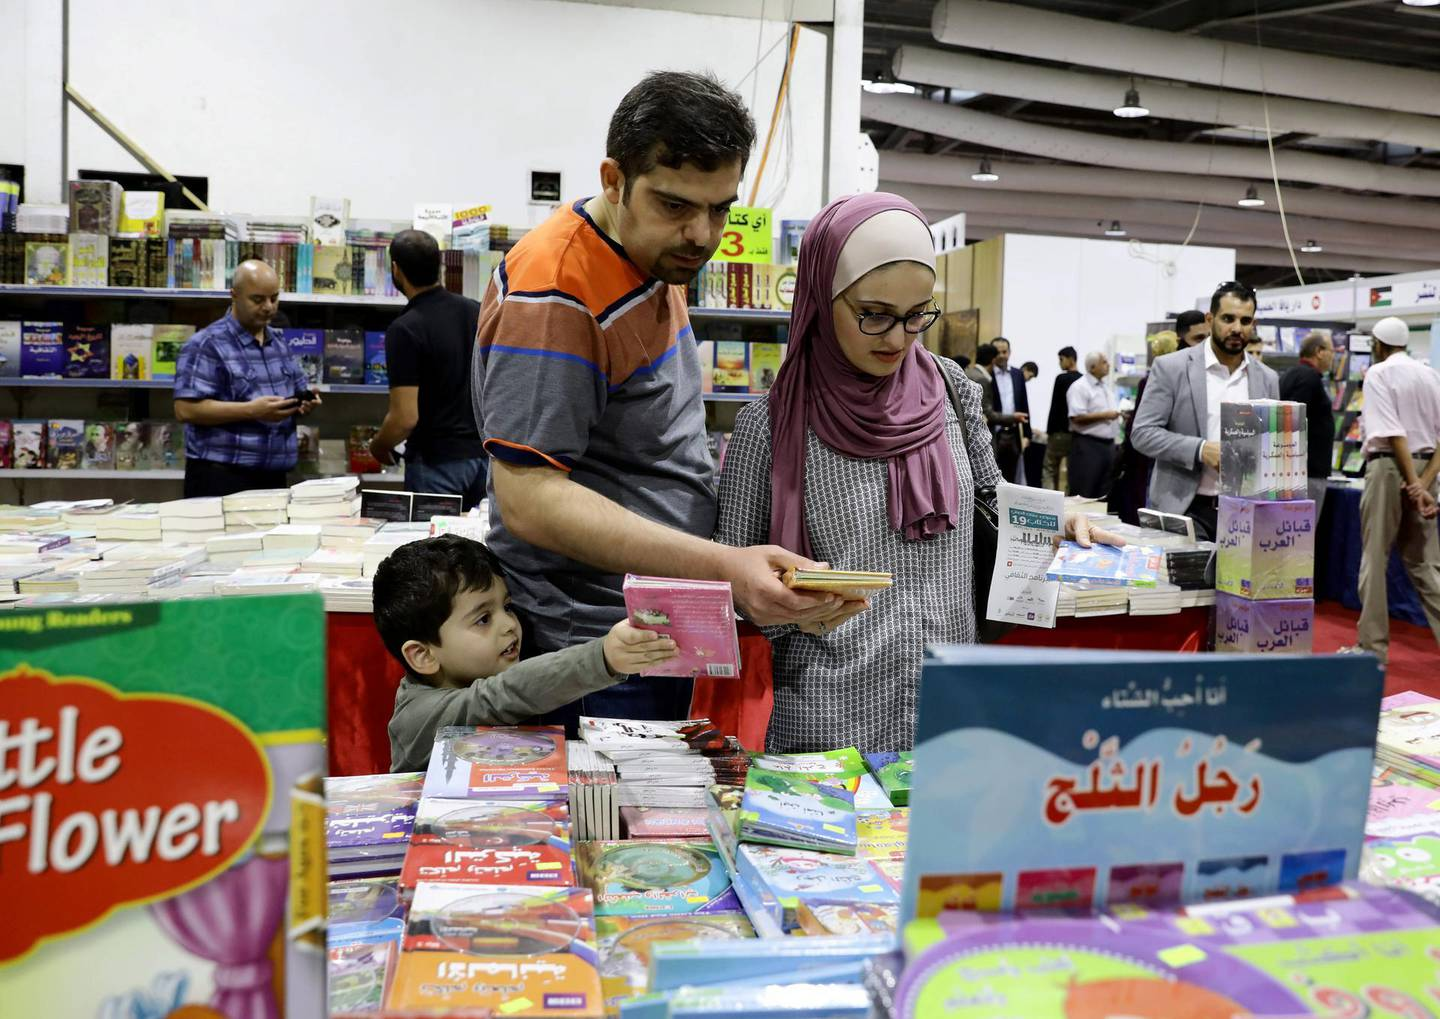 epa07871847 Visitors look at children's books presented at the 19th Amman  International Book Fair, in Amman, Jordan, 26 September 2019. The event opened its doors on 26 September and is due to last until 05 October, featuring publishers from the Arab world with their own books in Arabic and English as well as non-Arabic publications they import. The 19th edition's guest of honor is Tunisia.  EPA-EFE/AMEL PAIN *** Local Caption *** 55498029